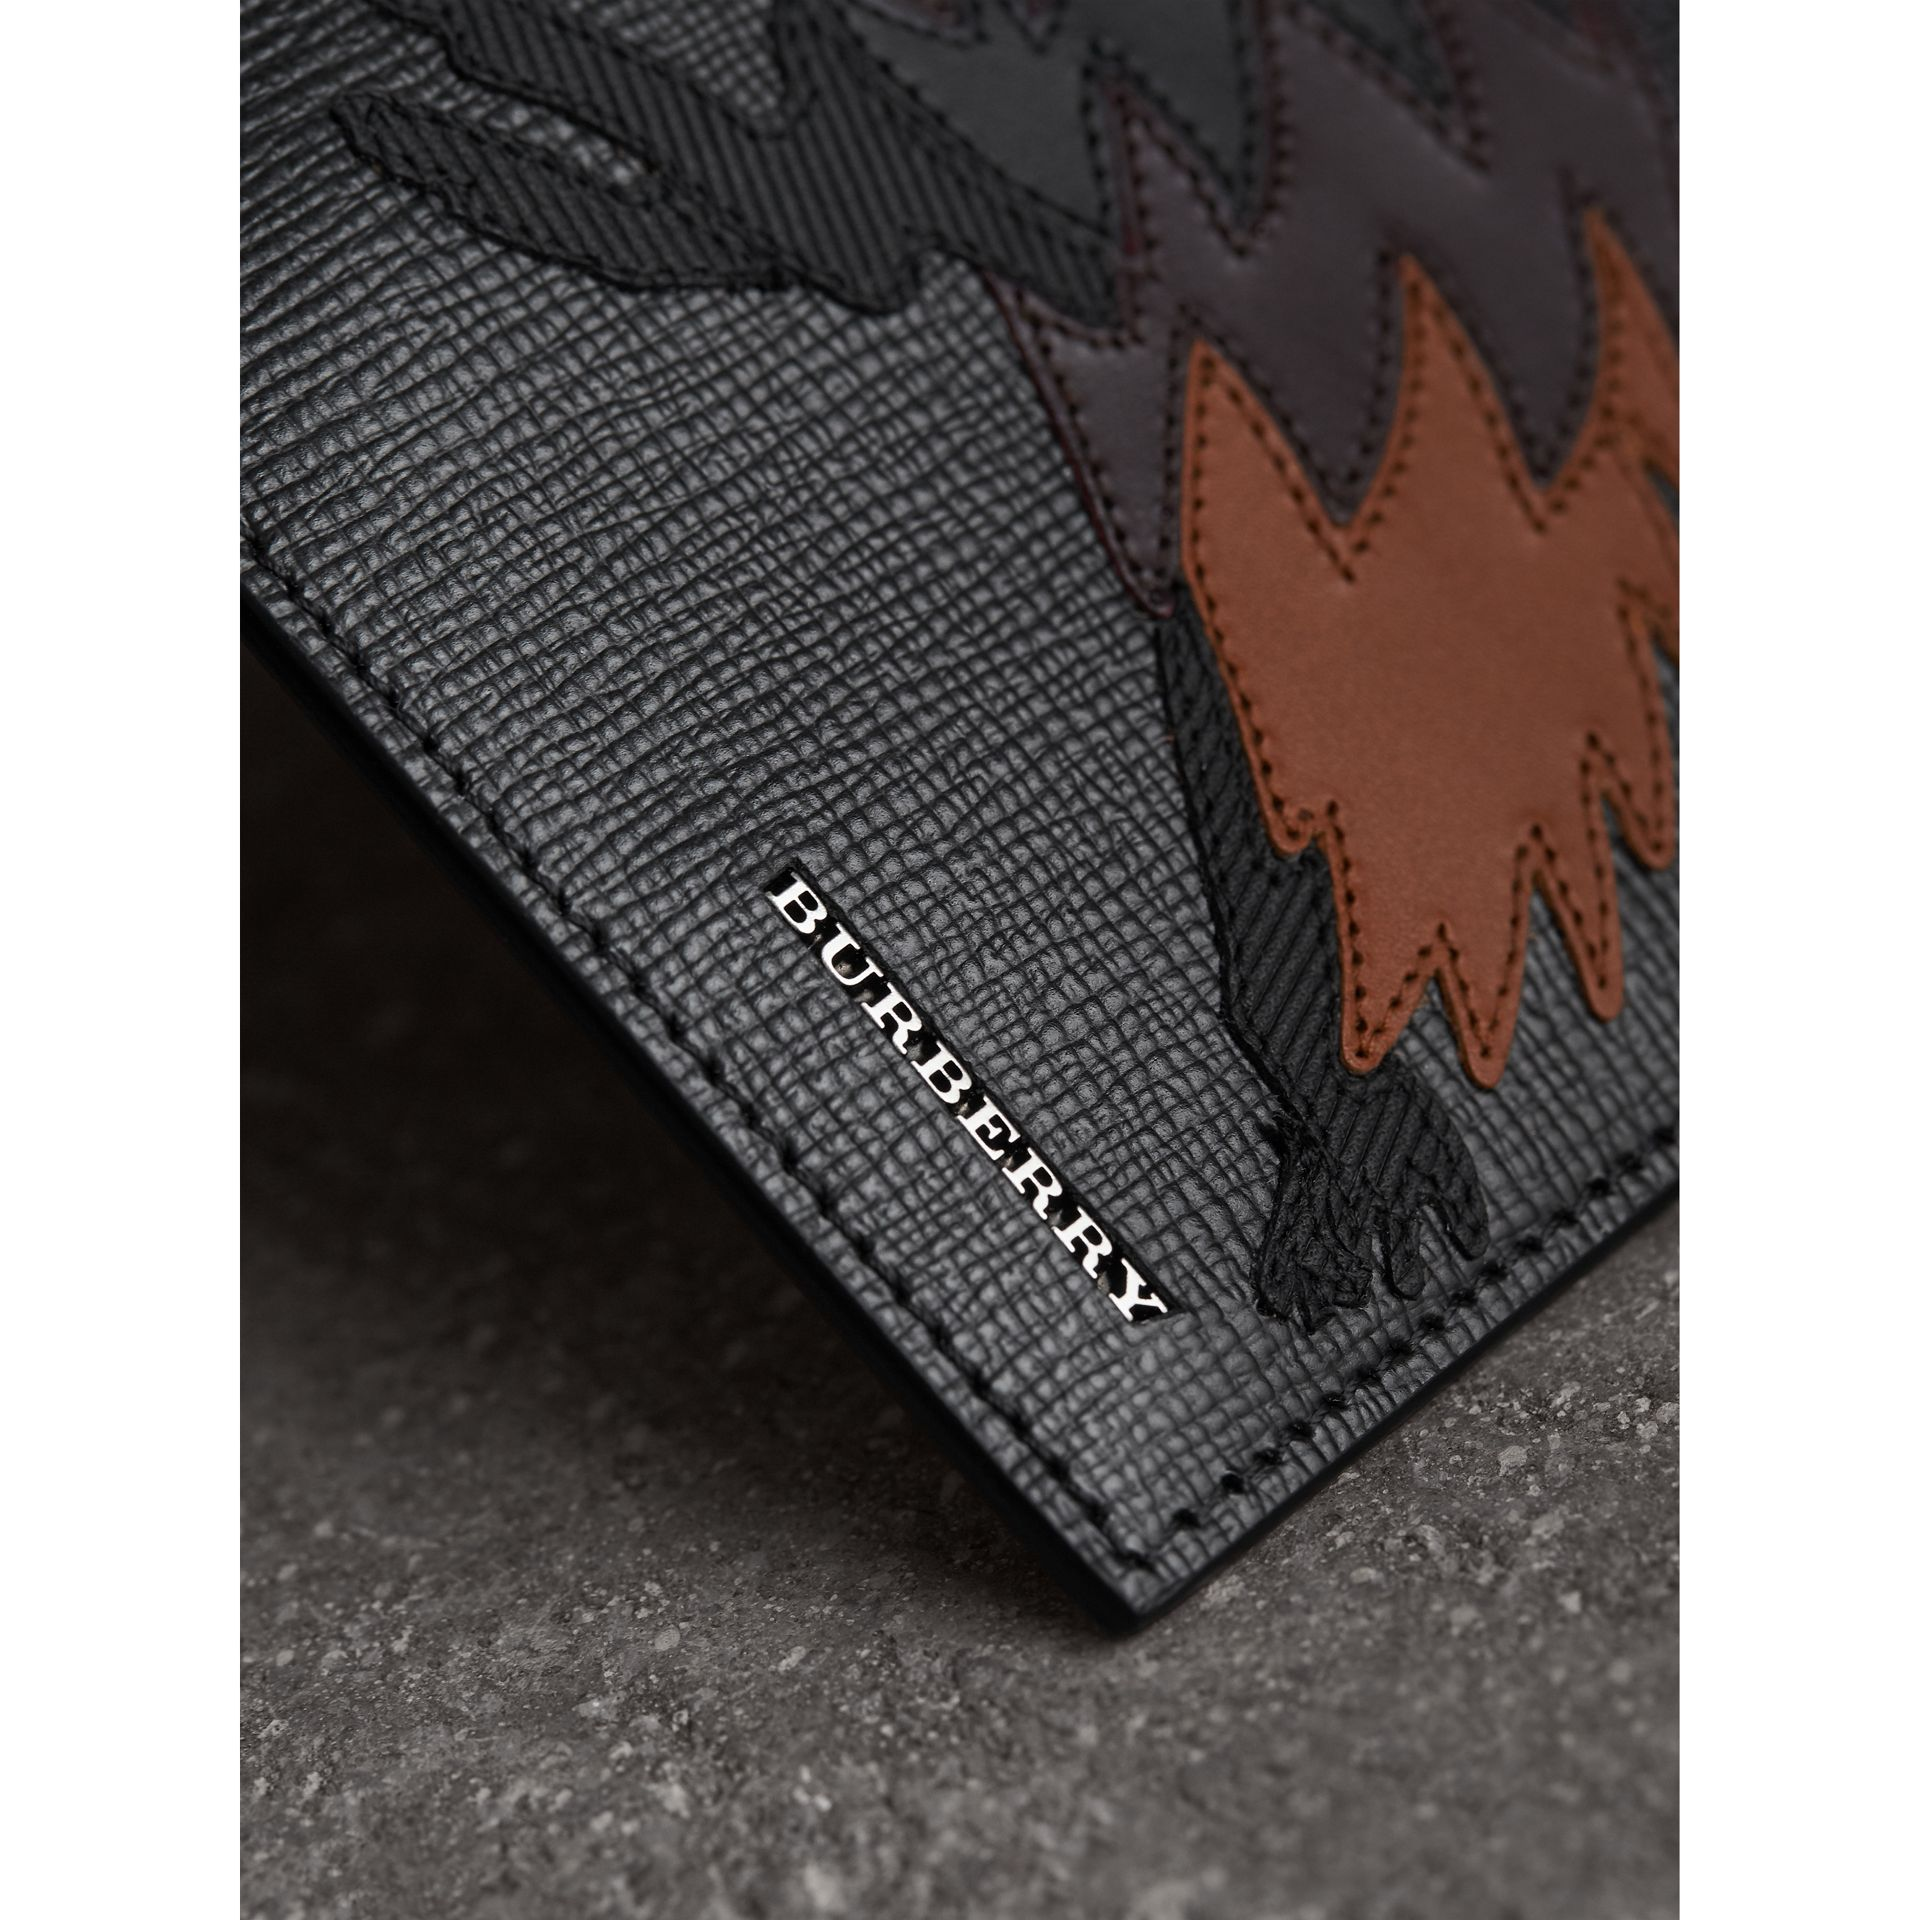 Beasts Motif Leather International Bifold Wallet in Black - Men | Burberry - gallery image 2